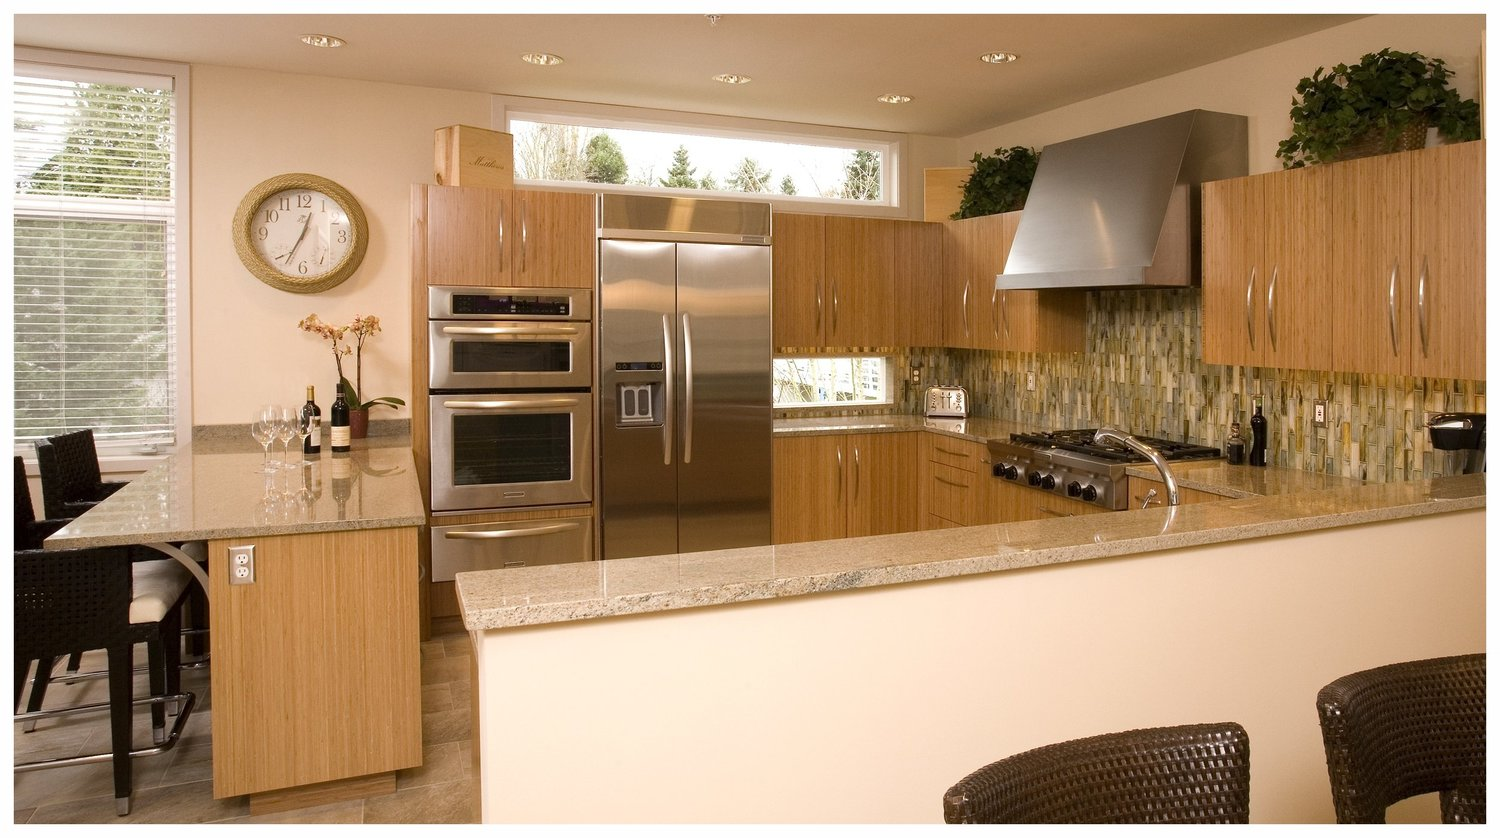 Kitchen Kirkland Houghton Contemporary Kitchen 5 Jpg